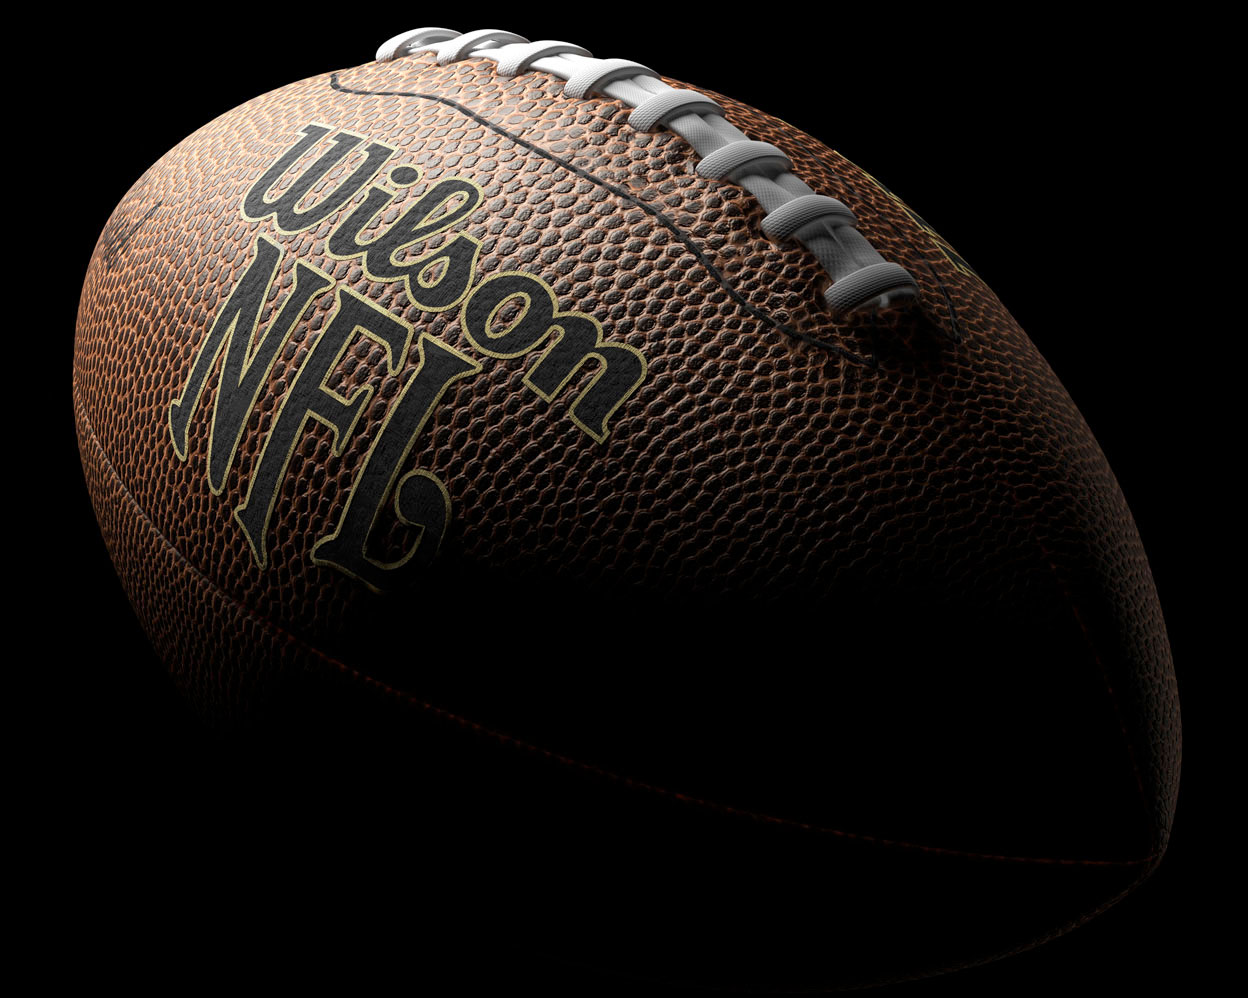 computer generated image photo of football